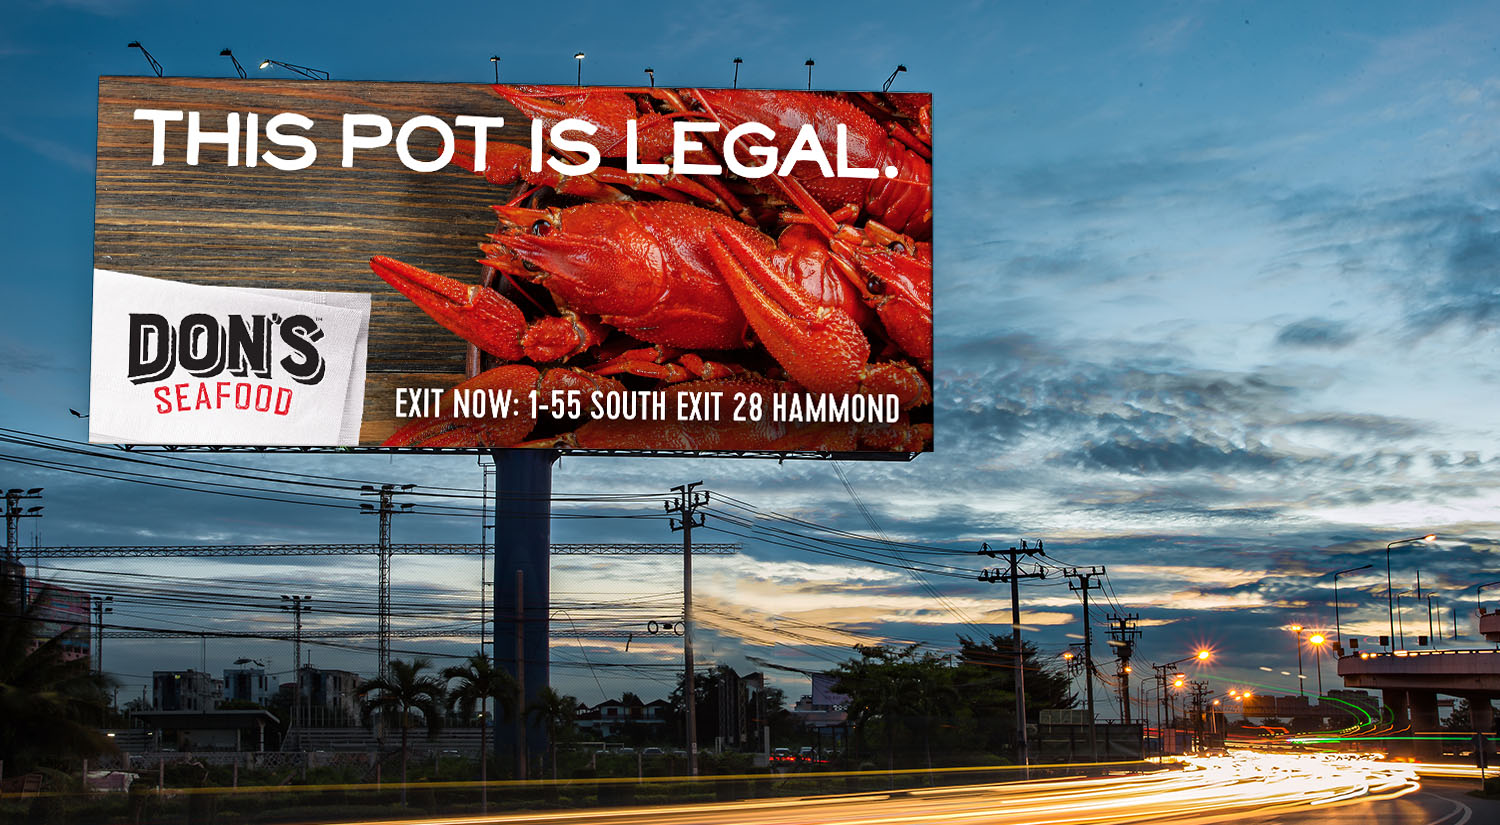 Don's Seafood   Outdoor: This Pot is Legal